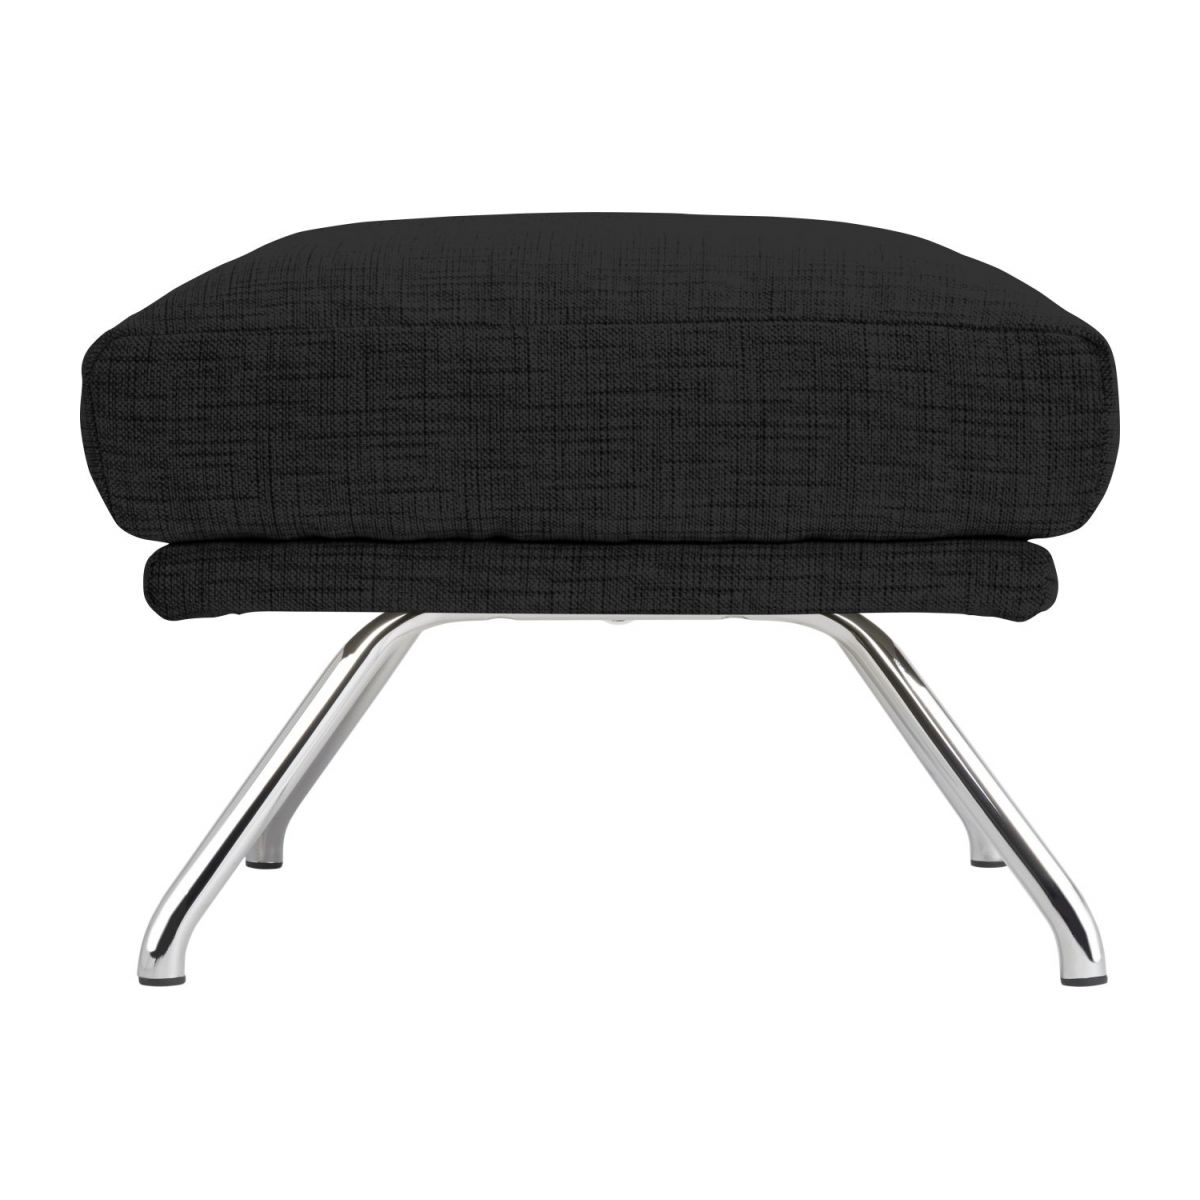 Footstool in Ancio fabric, nero with chromed metal legs n°5